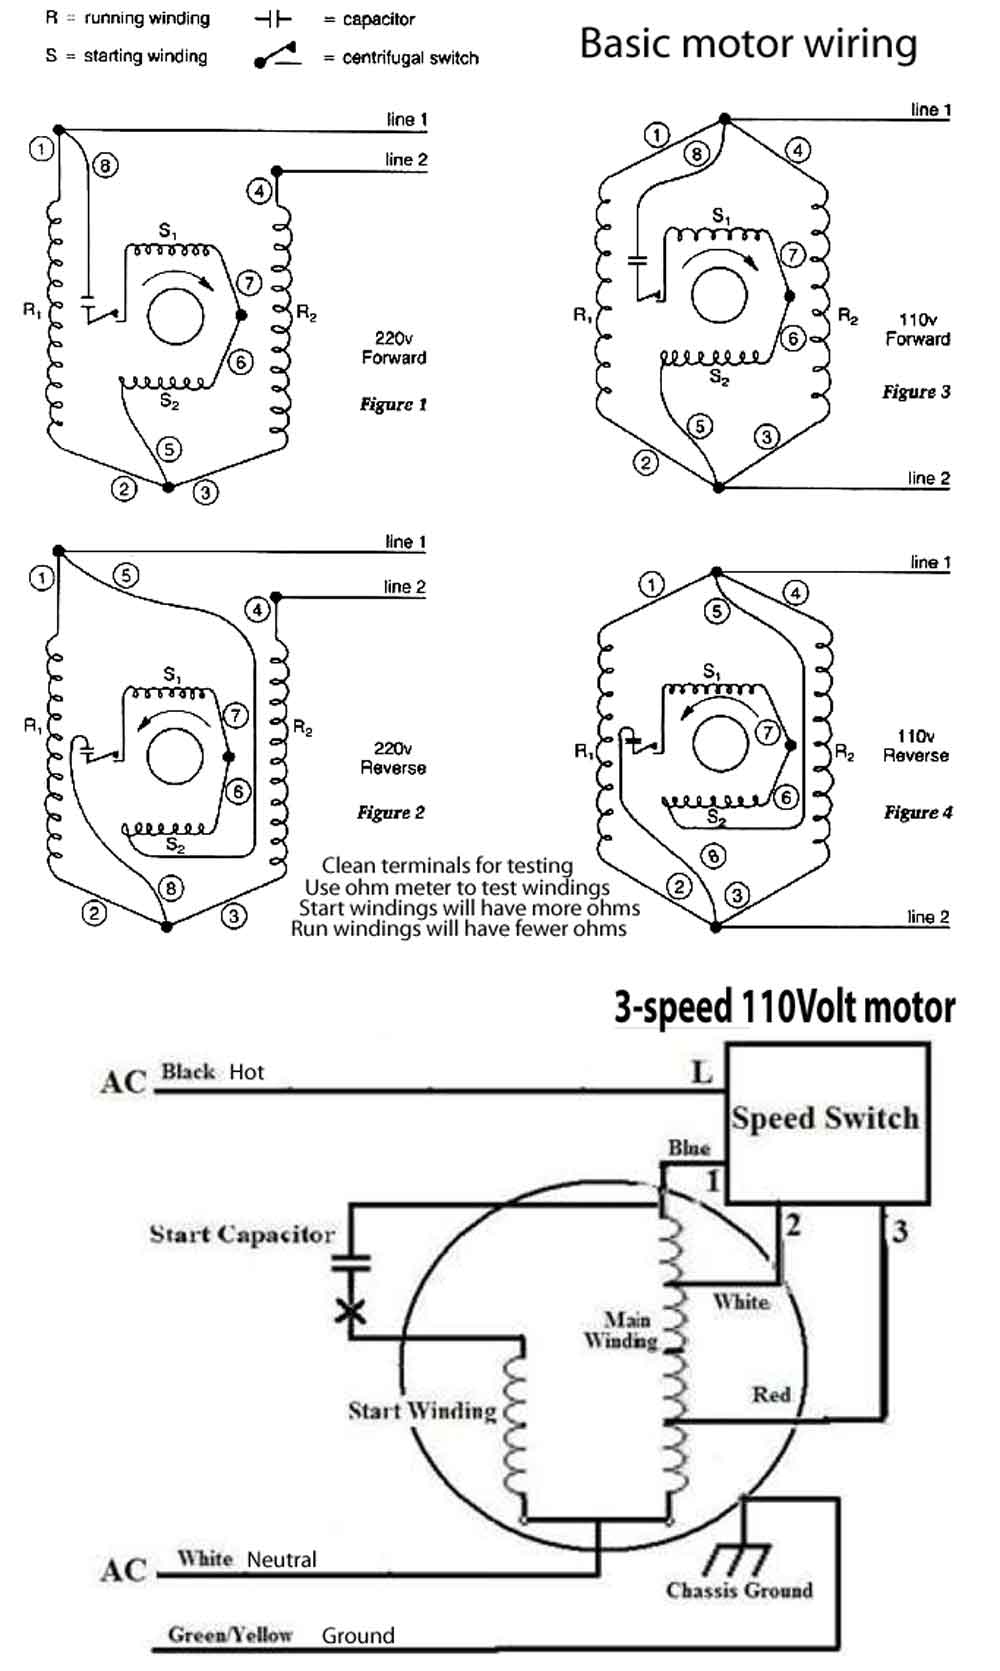 How To Wire 3 Speed Fan Switch Wiring Switches Diagram Motor